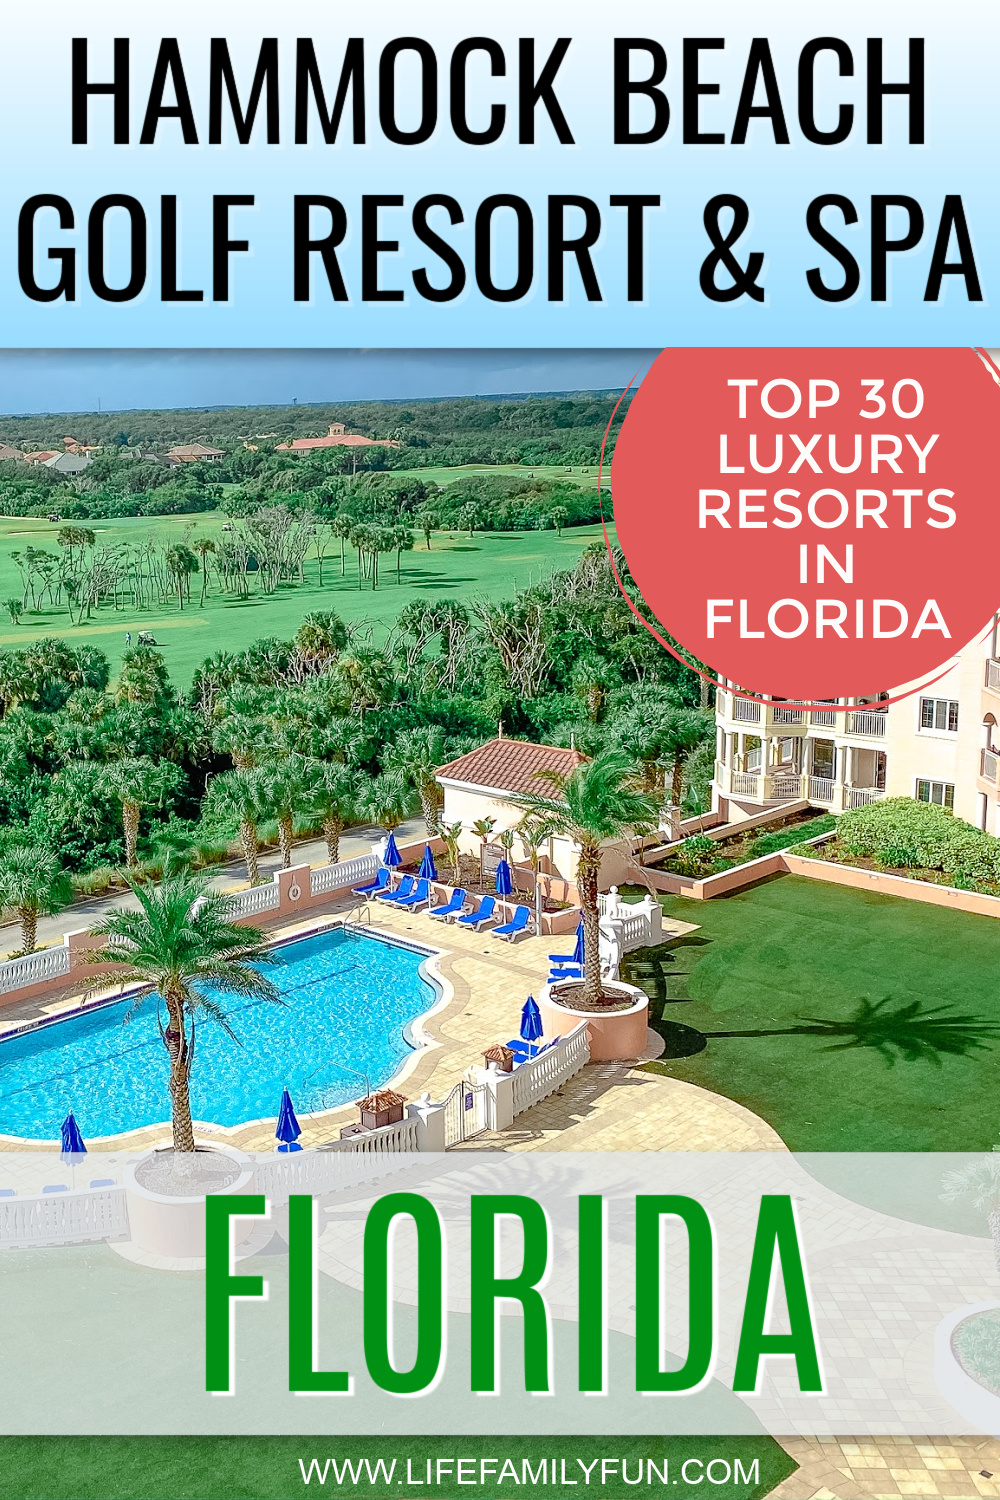 Hammock Beach Golf Resort - Pin for Pinterest